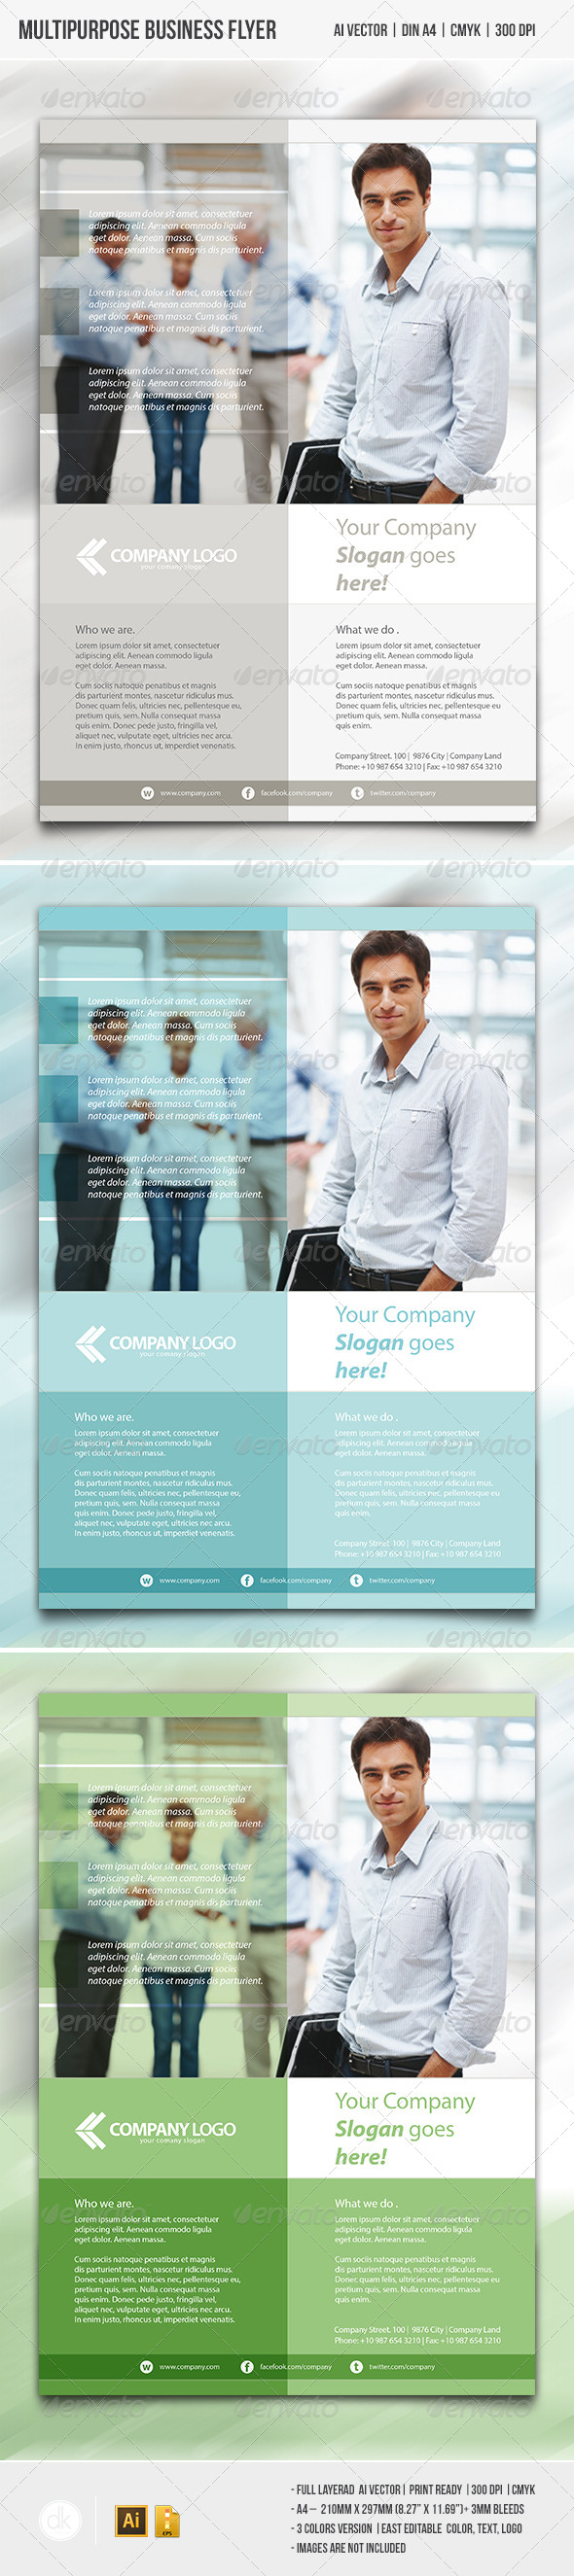 GraphicRiver Multipurpose Business Flyer 4130335